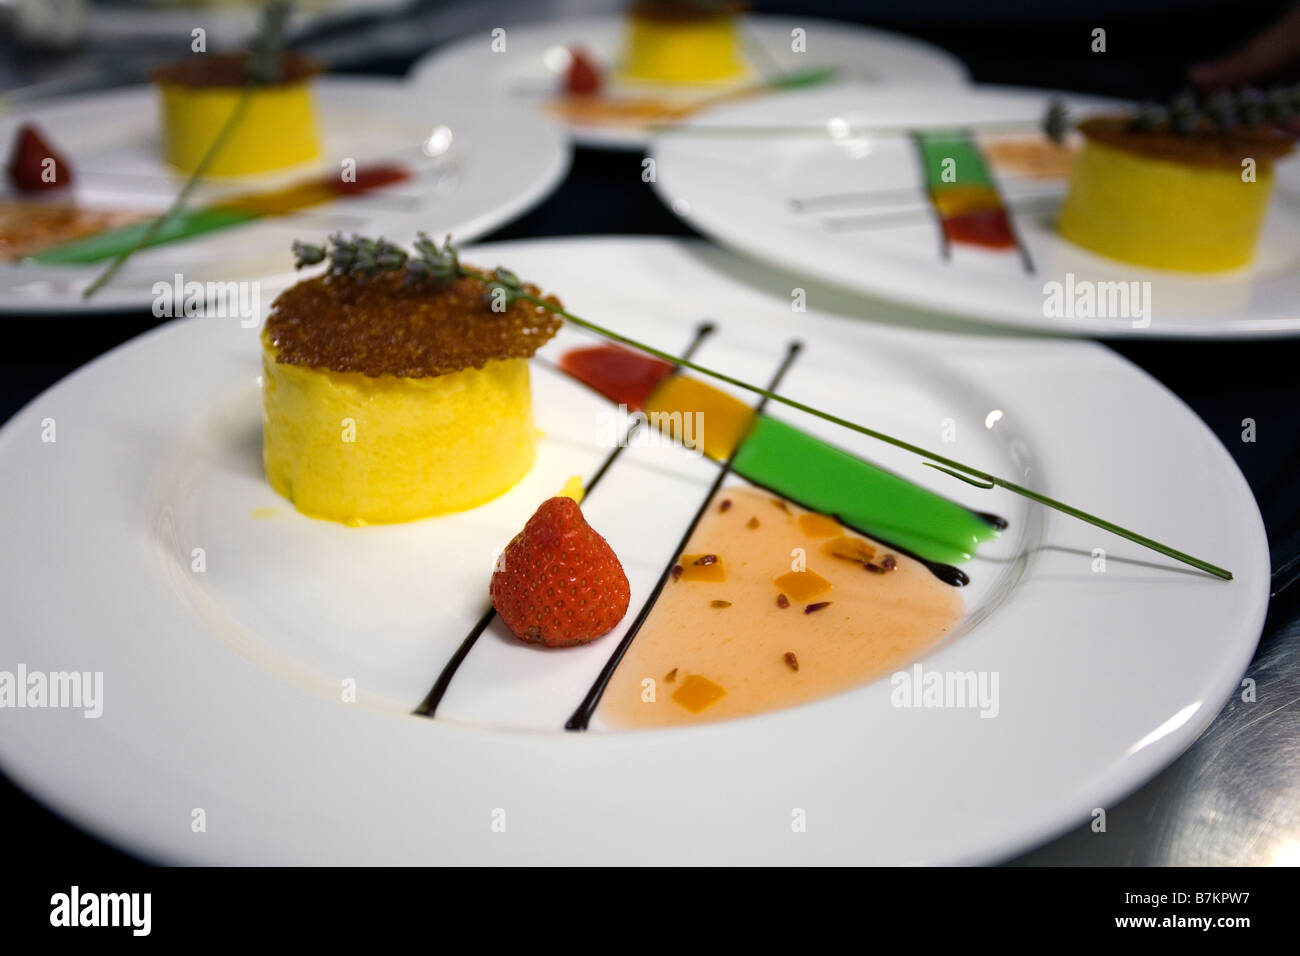 Related keywords suggestions for nouvelle cuisine for American nouveau cuisine